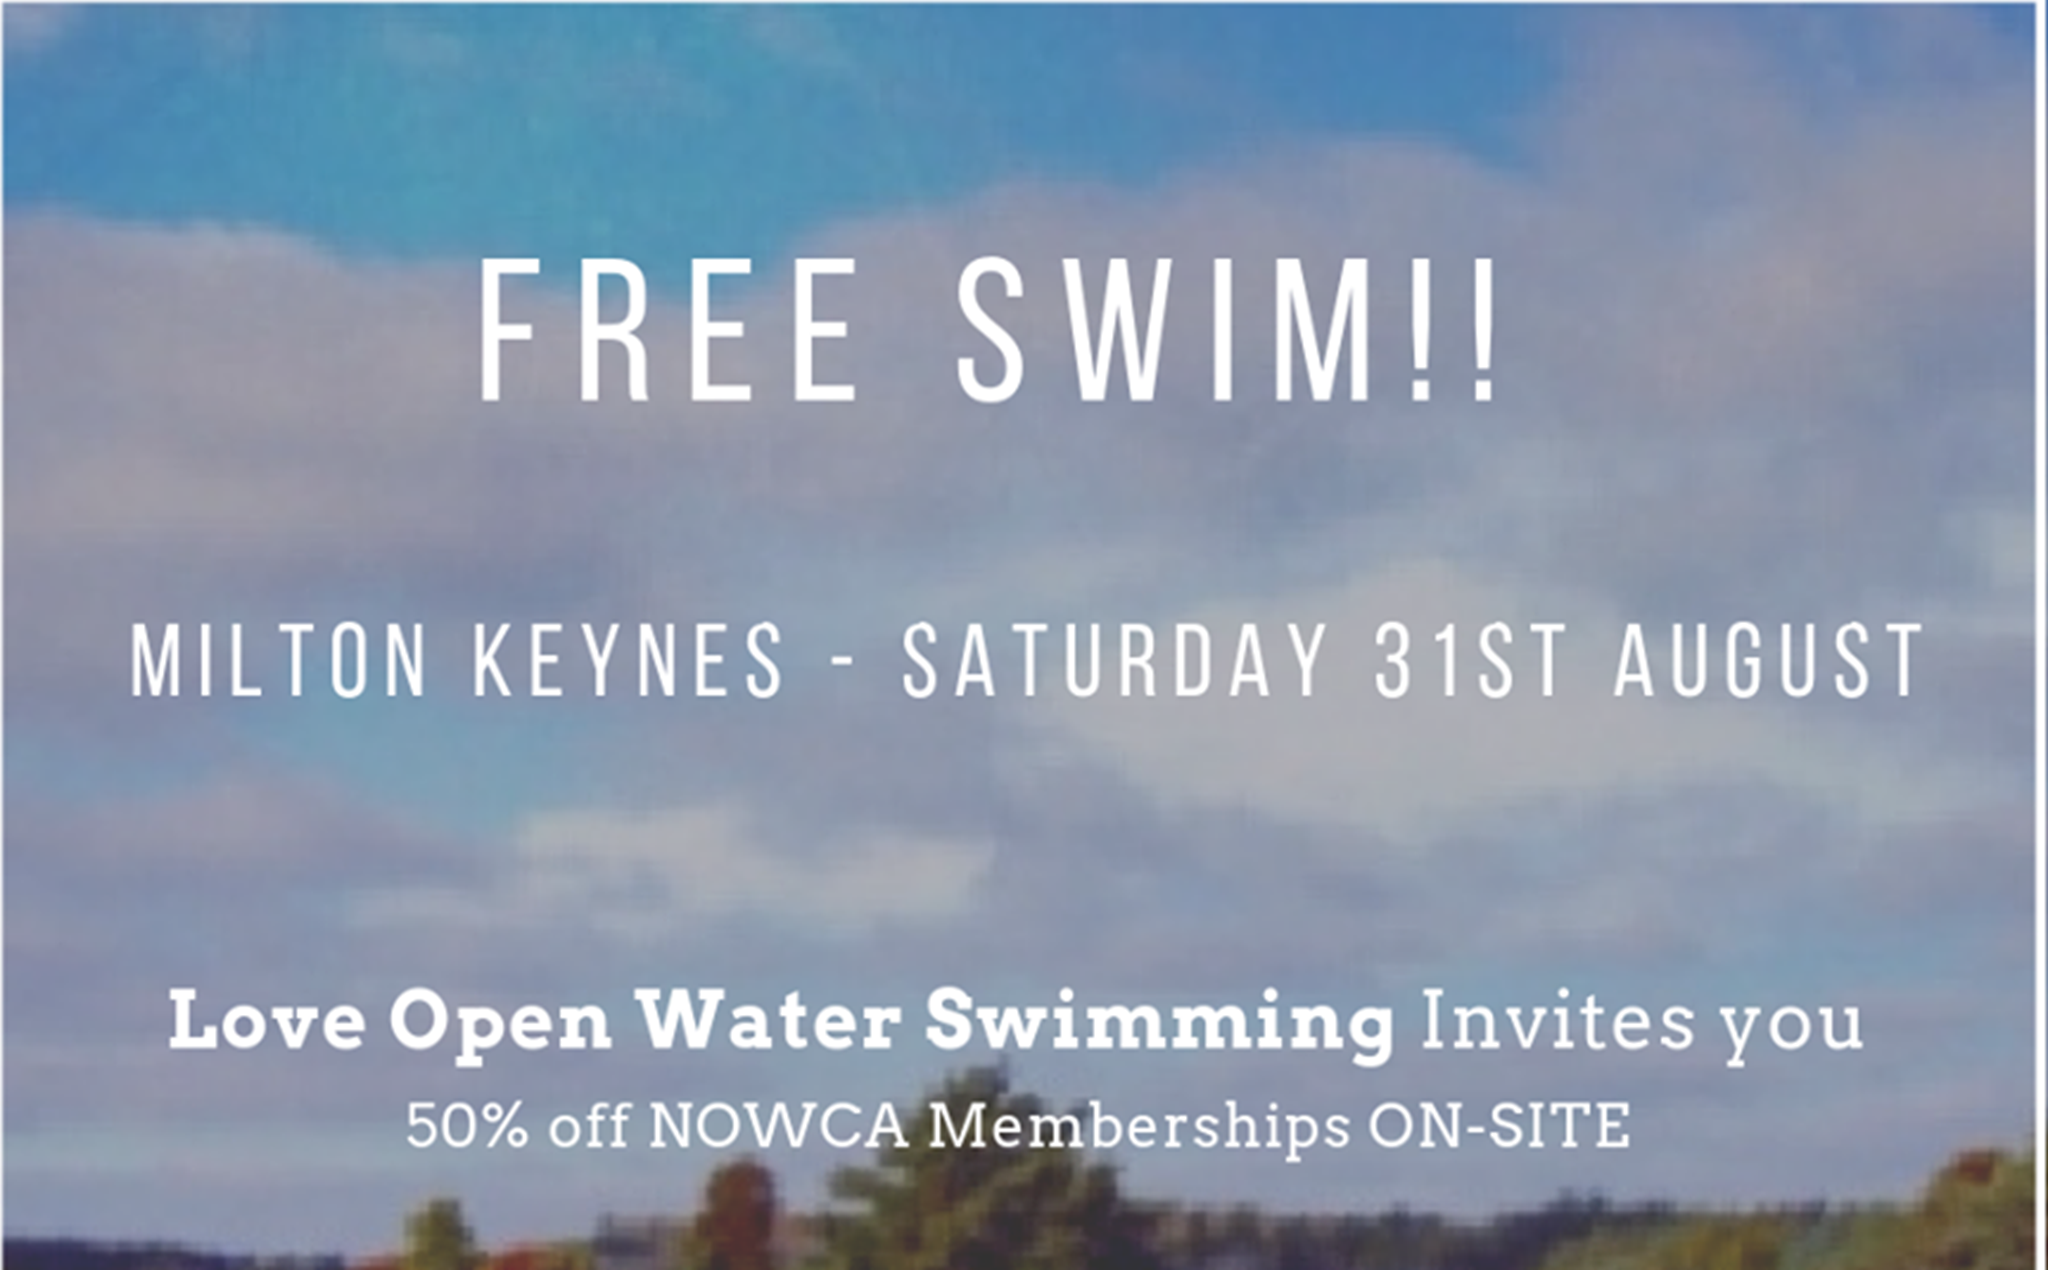 Free swim and half price membership offer MK - banner2.png